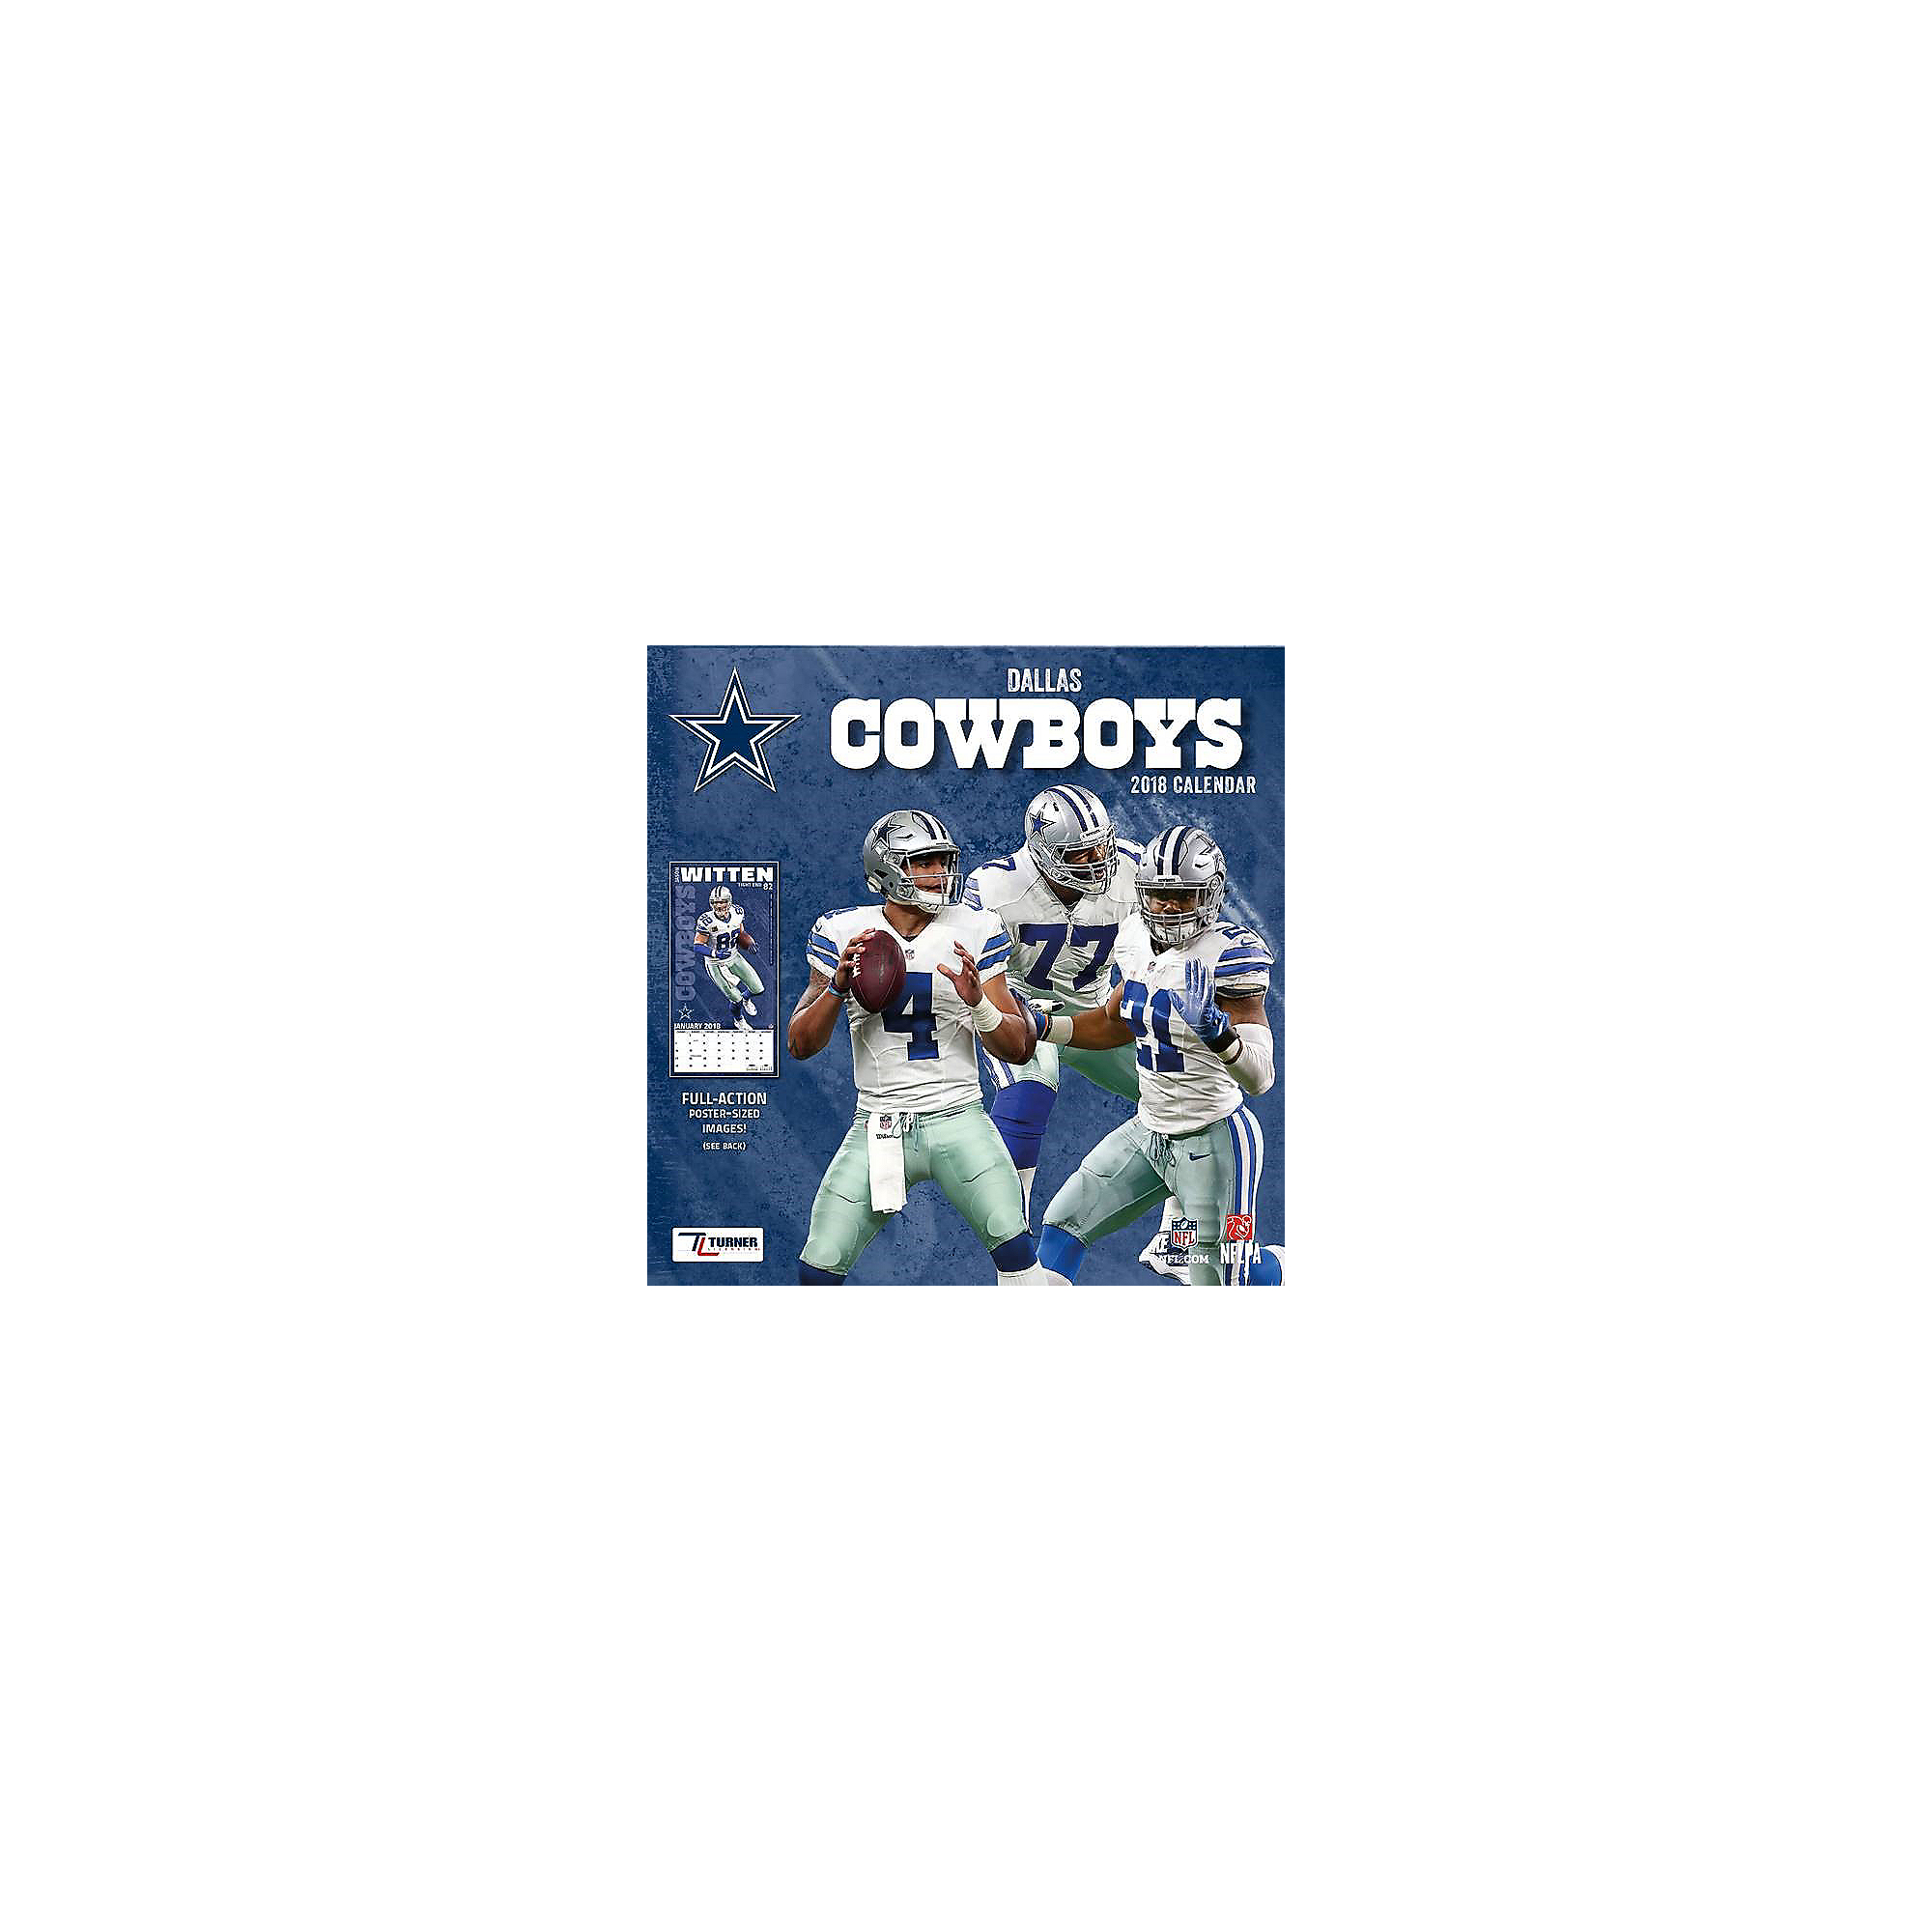 2018 7x7 Dallas Cowboys Team Mini Calendar